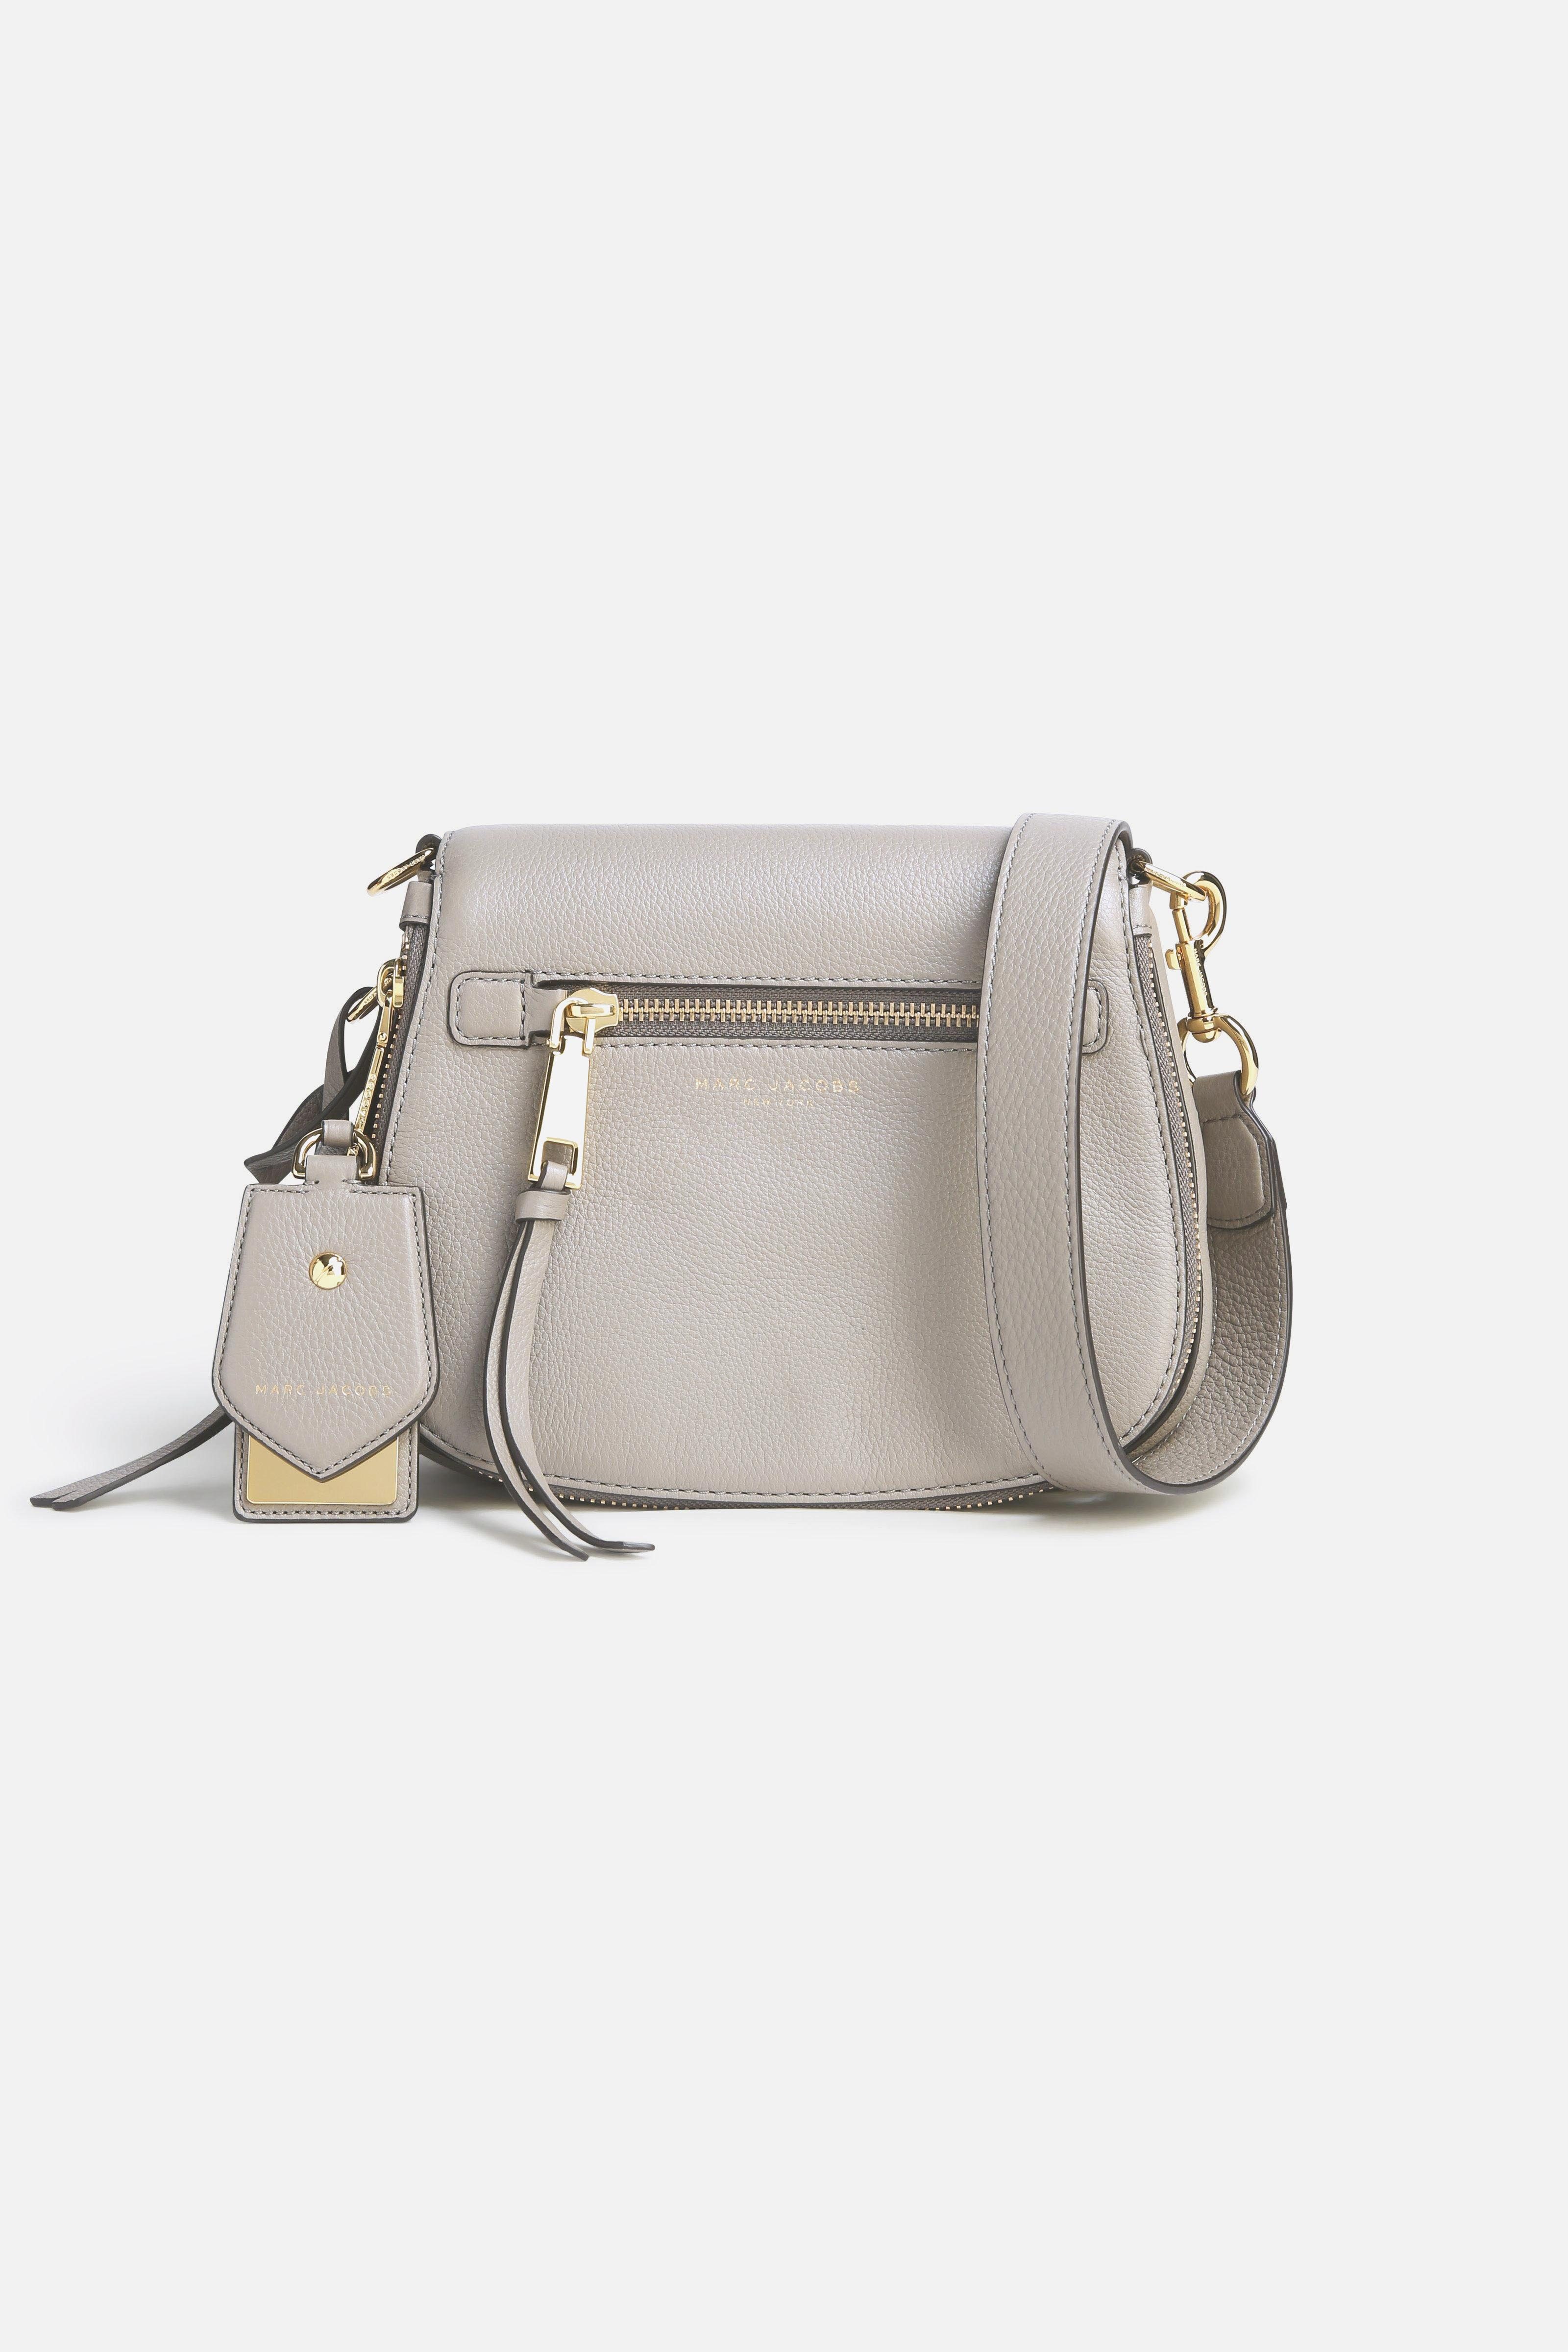 Marc Jacobs 10 - Recruit Small Nomad Bag - Mink